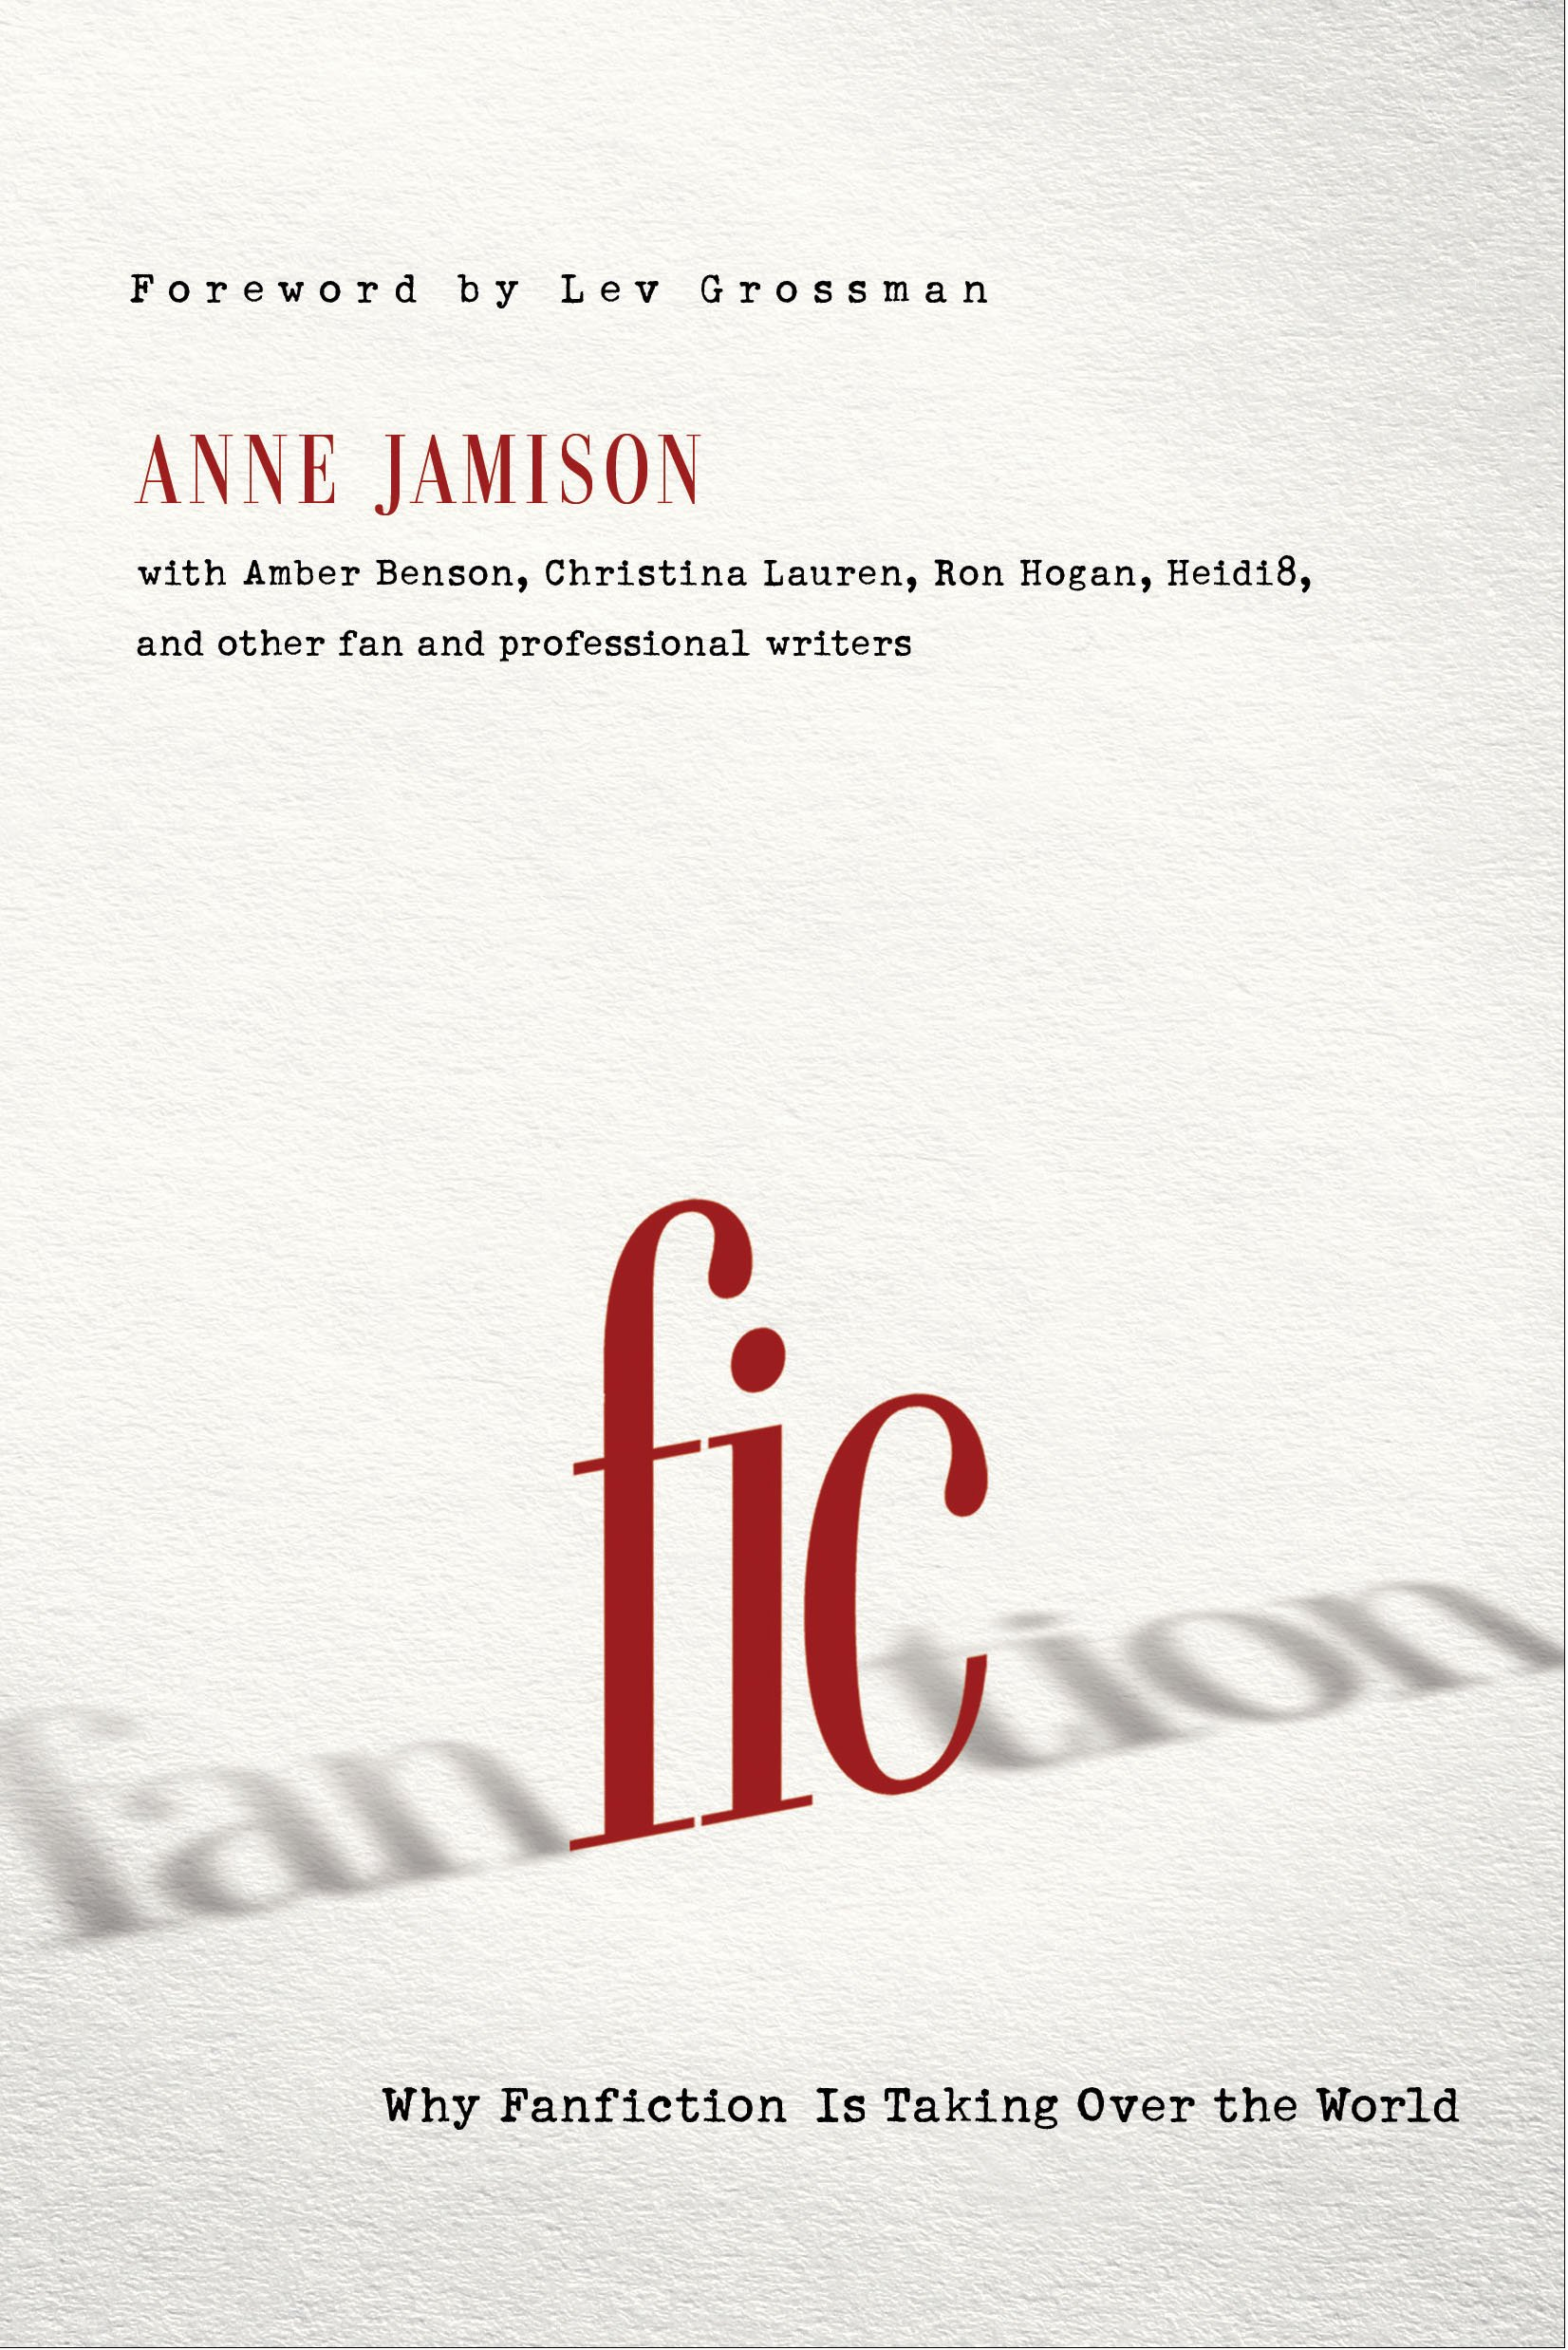 Fic: Why Fanfiction Is Taking Over the World: Anne Jamison